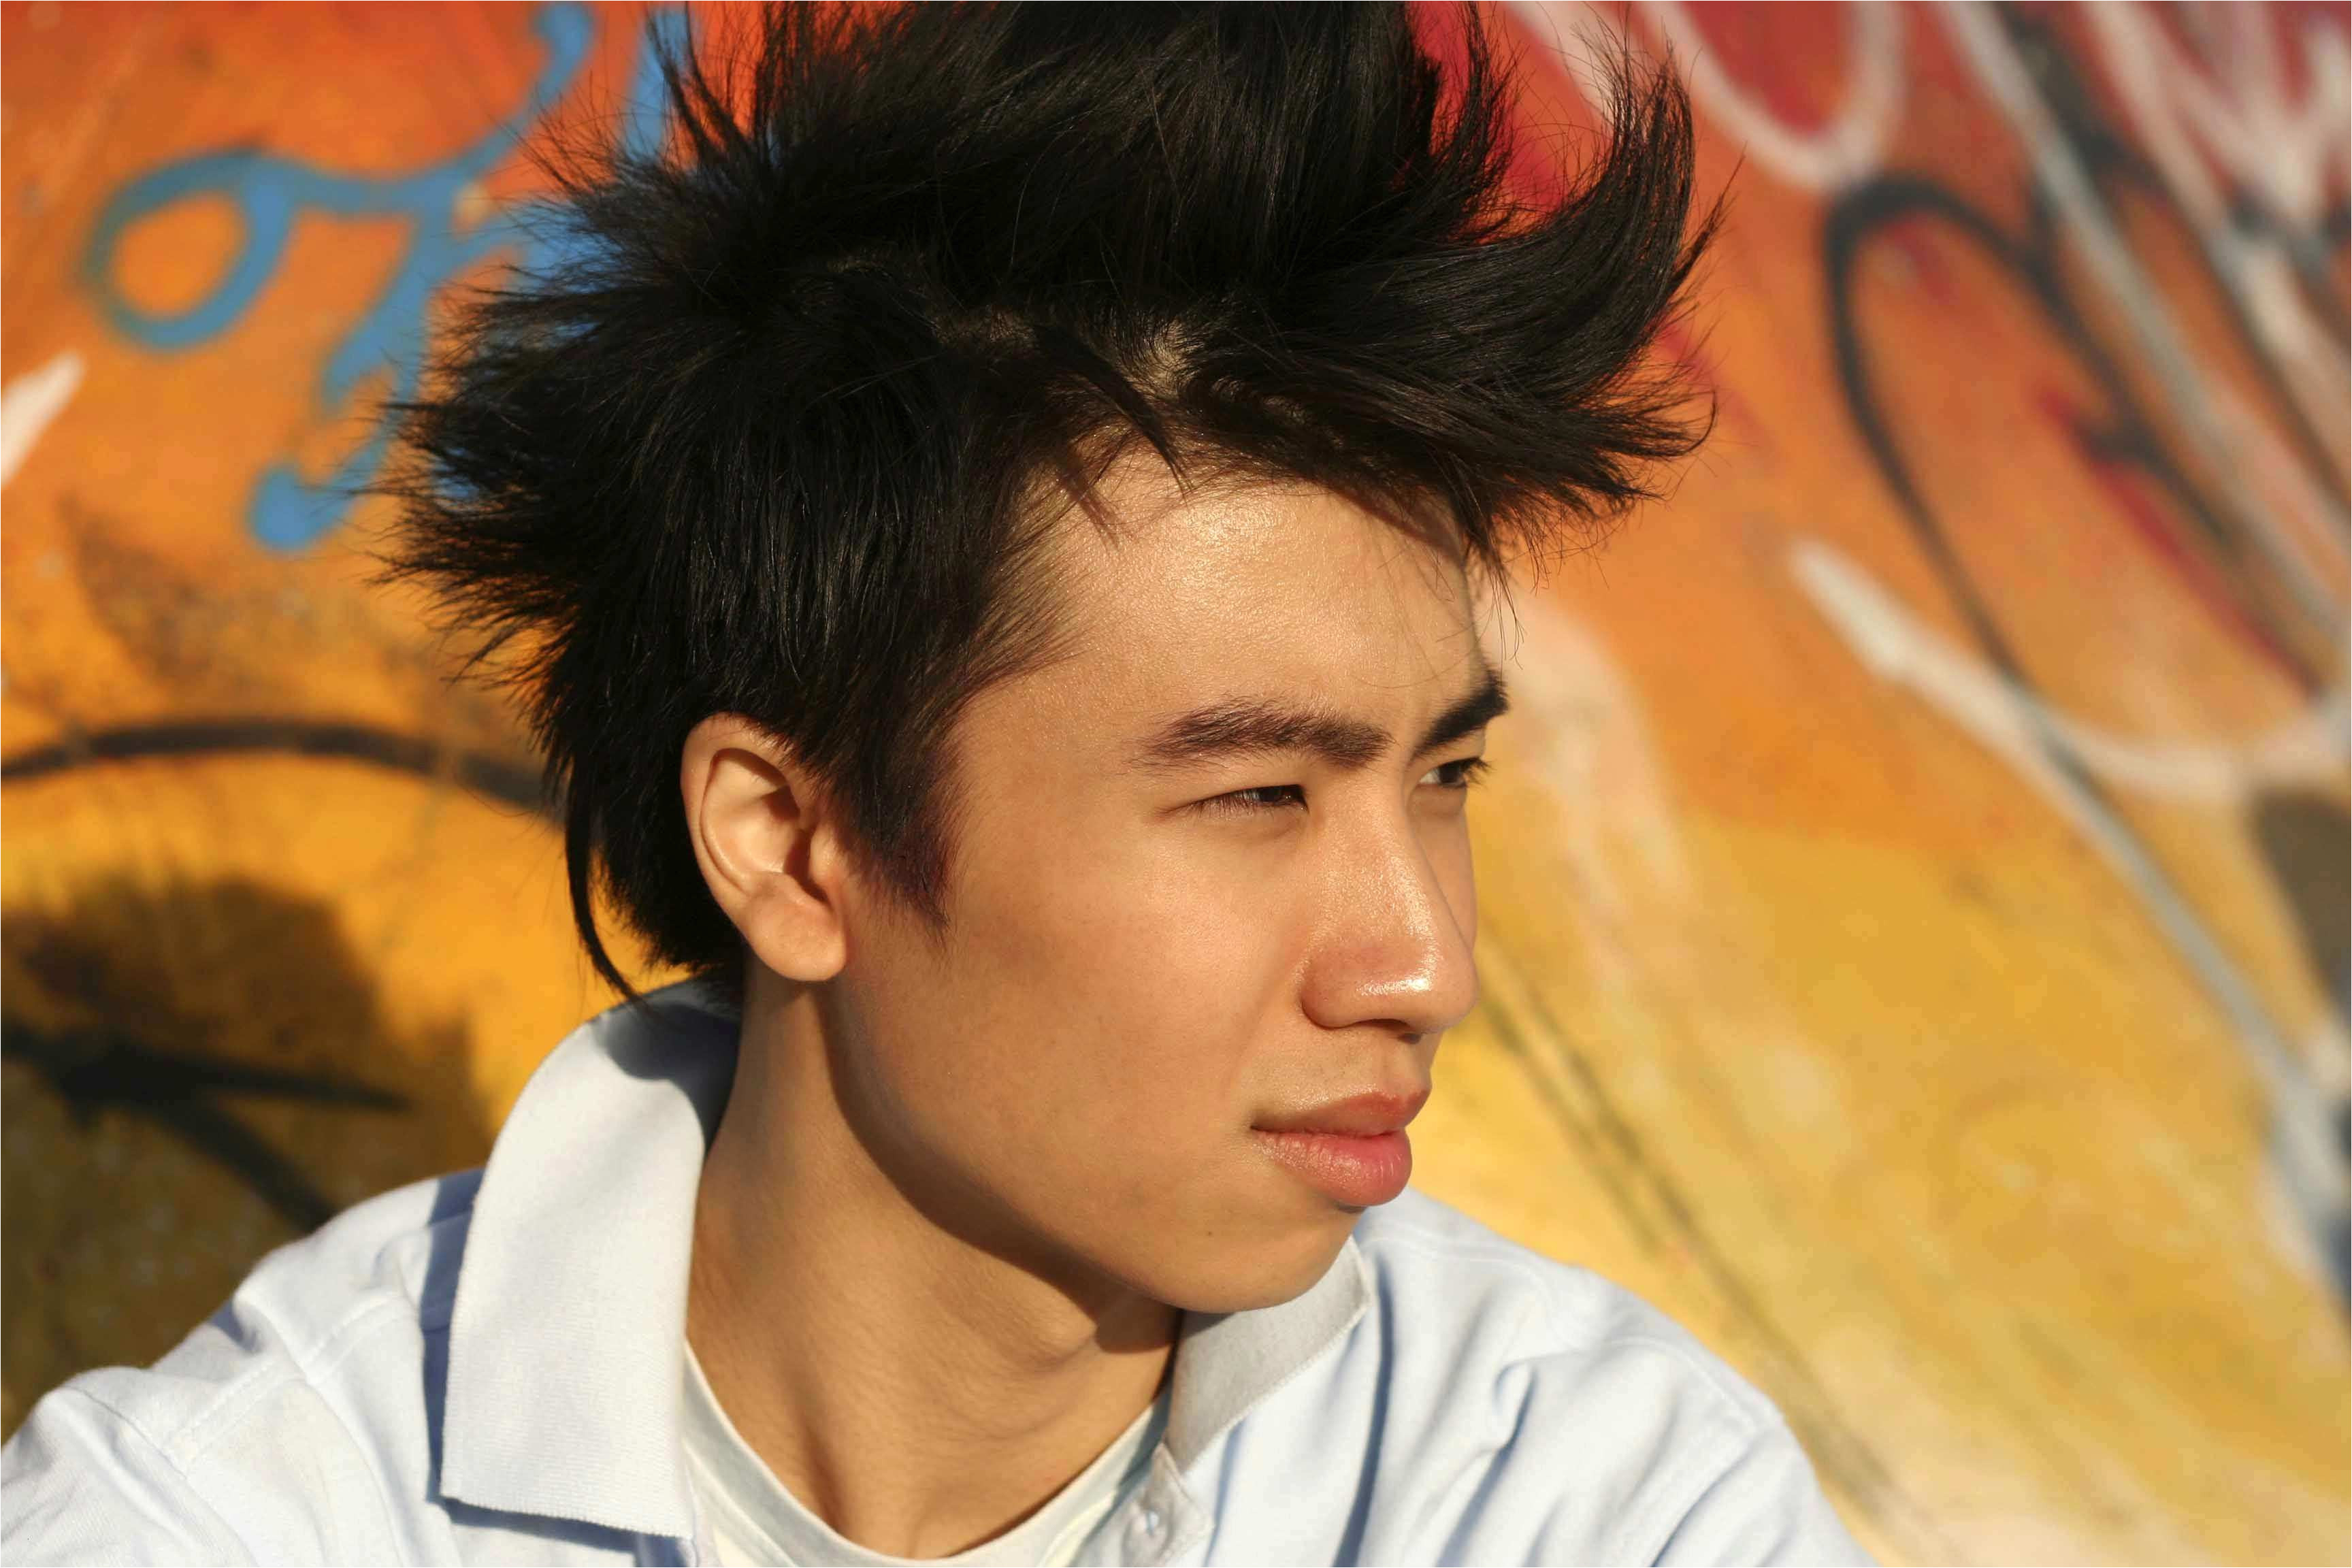 Short Hairstyles For Asian Hair Beautiful Haircuts For Medium Hair Best Beautiful Short Hairstyles For Wavy